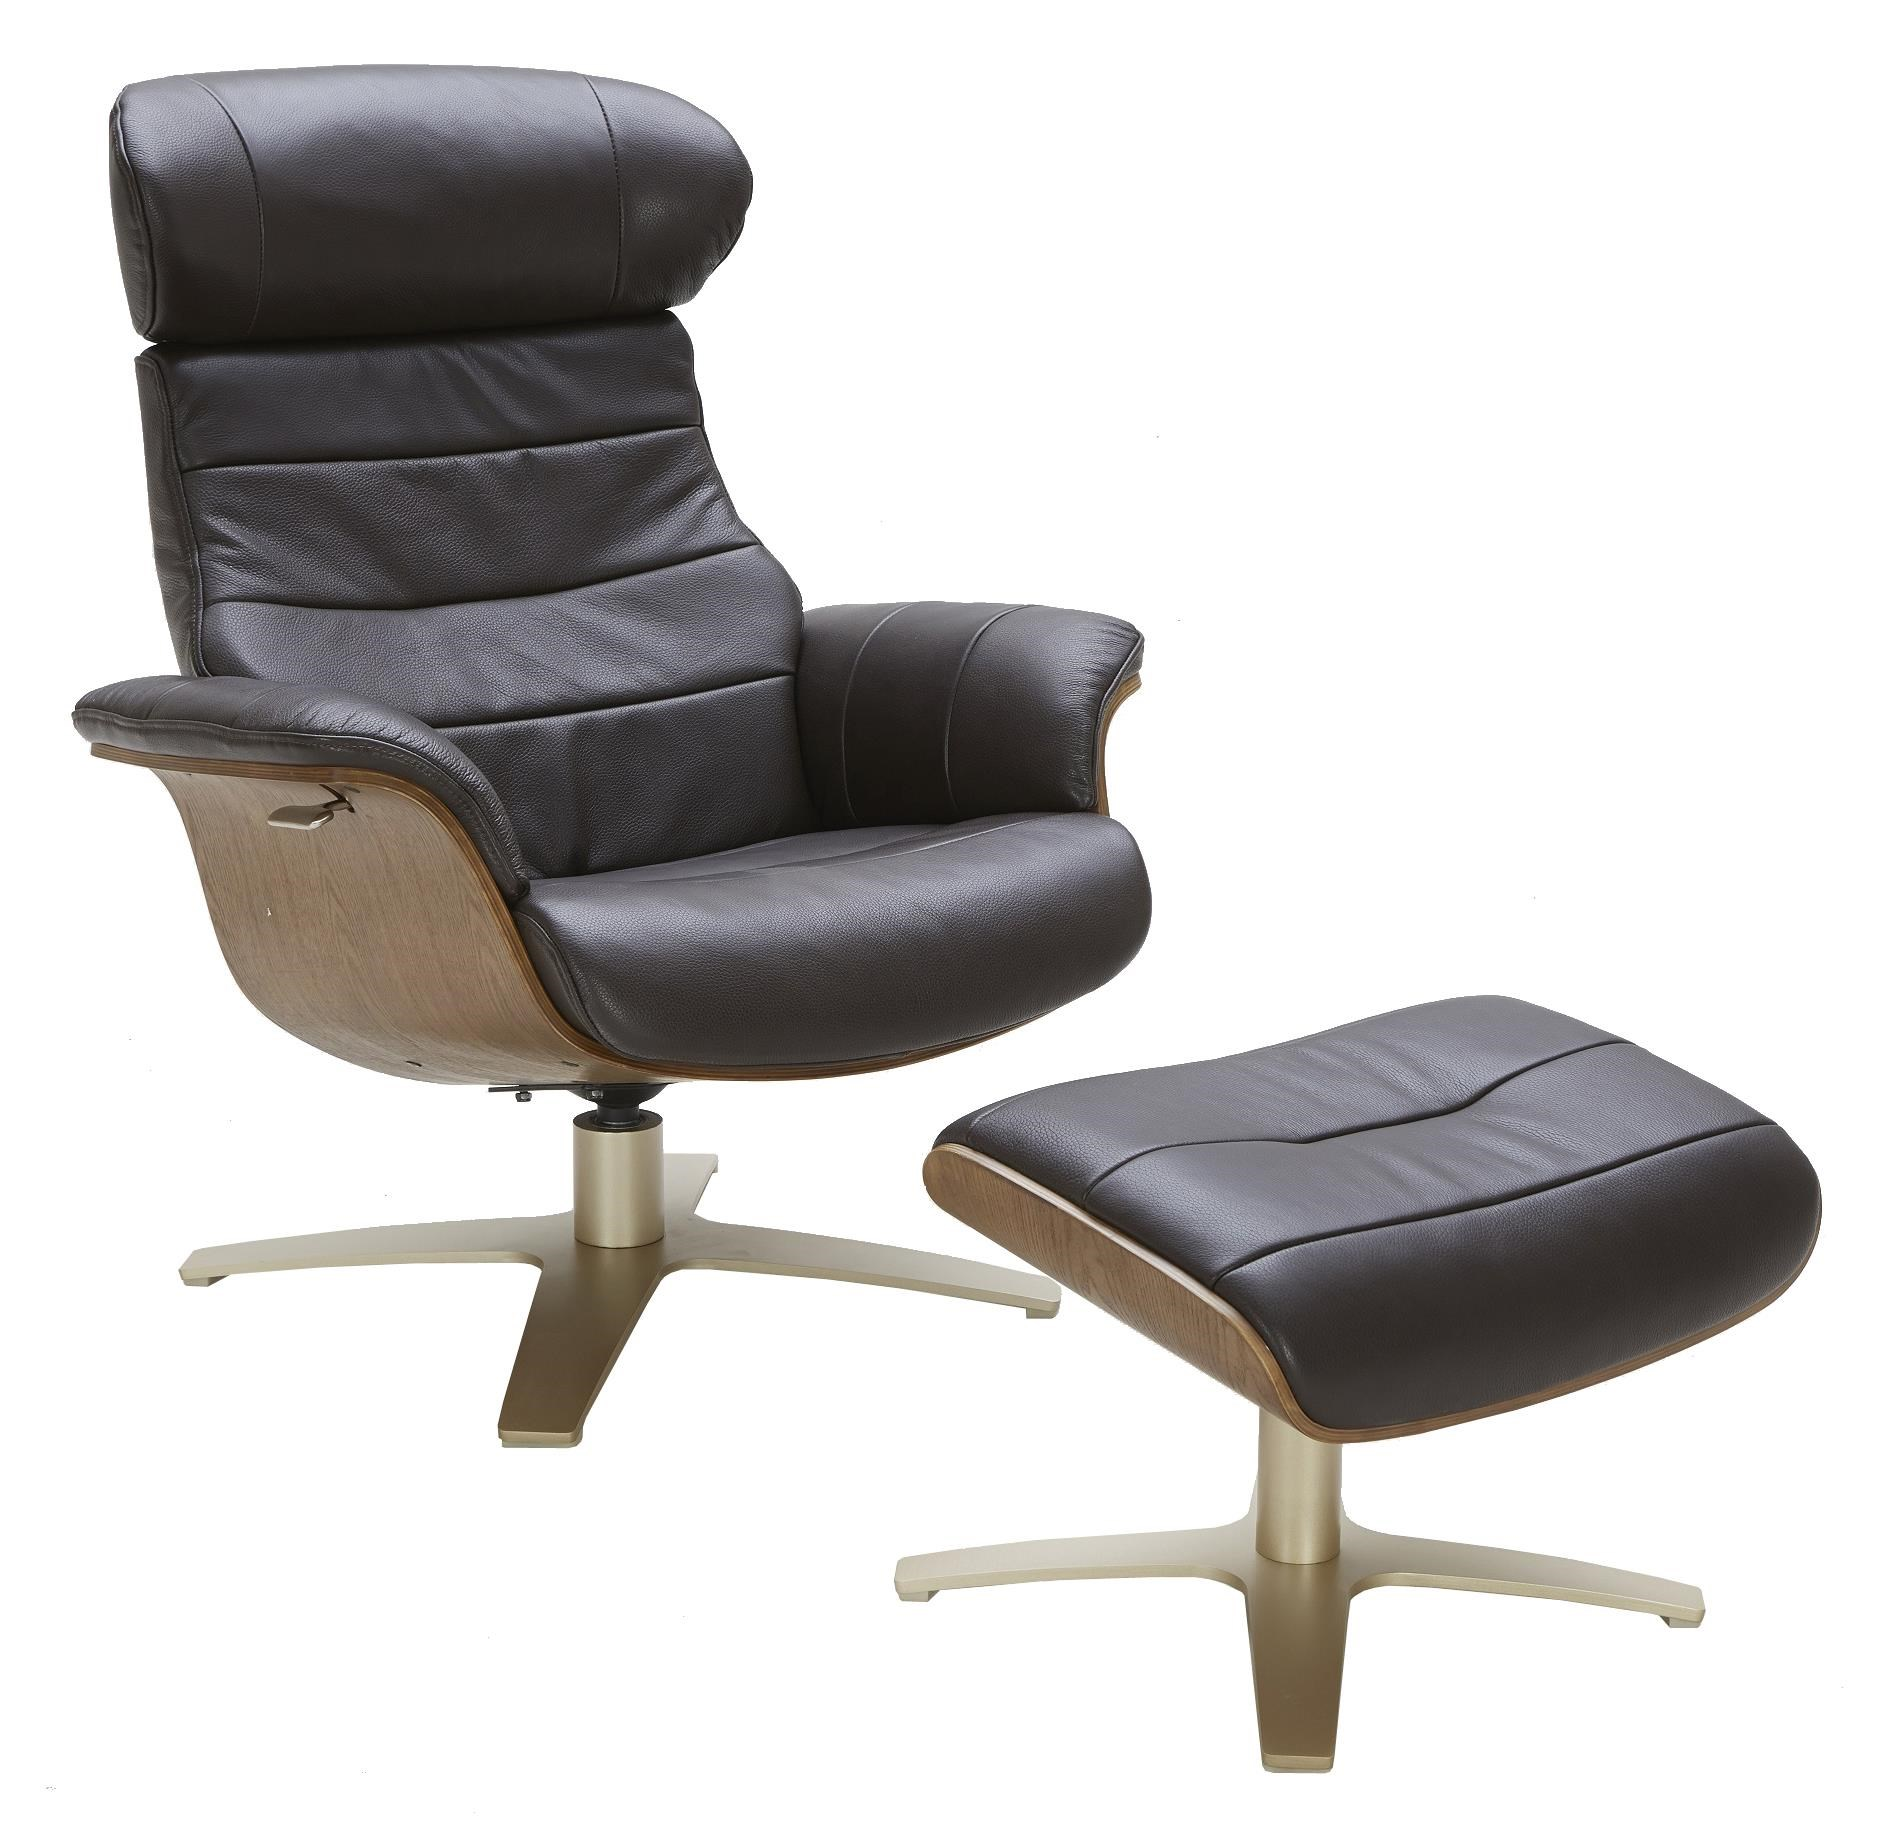 Evolution Chair Karma Leather Lean Back Swivel Chair And Ottoman By Urban Evolution At Belfort Furniture